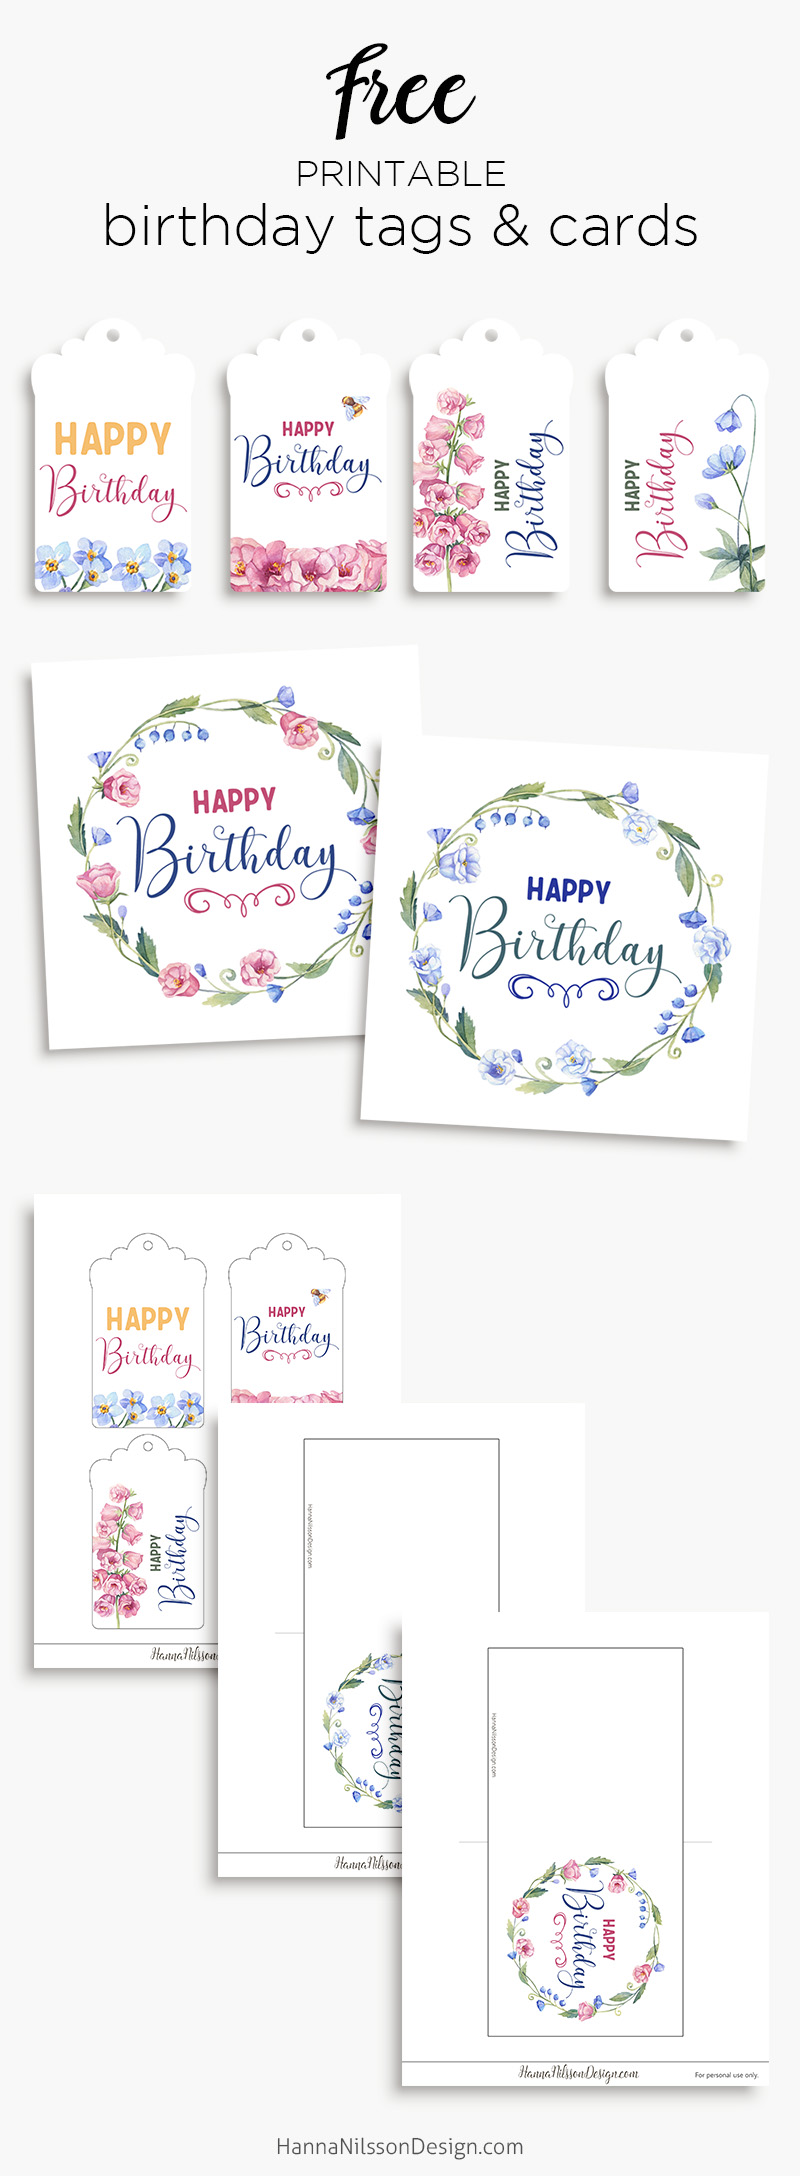 picture relating to Free Printable Birthday Tag identify Birthday tags playing cards Totally free floral printables Hanna